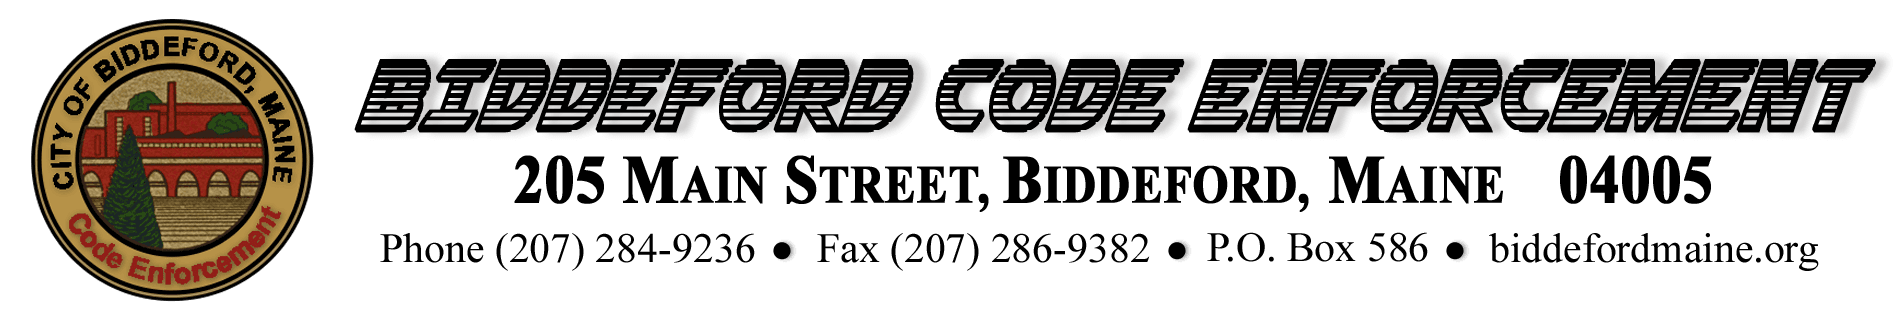 CODE ENFORCEMENT MASTER LETTERHEAD IMAGE April 2, 2020